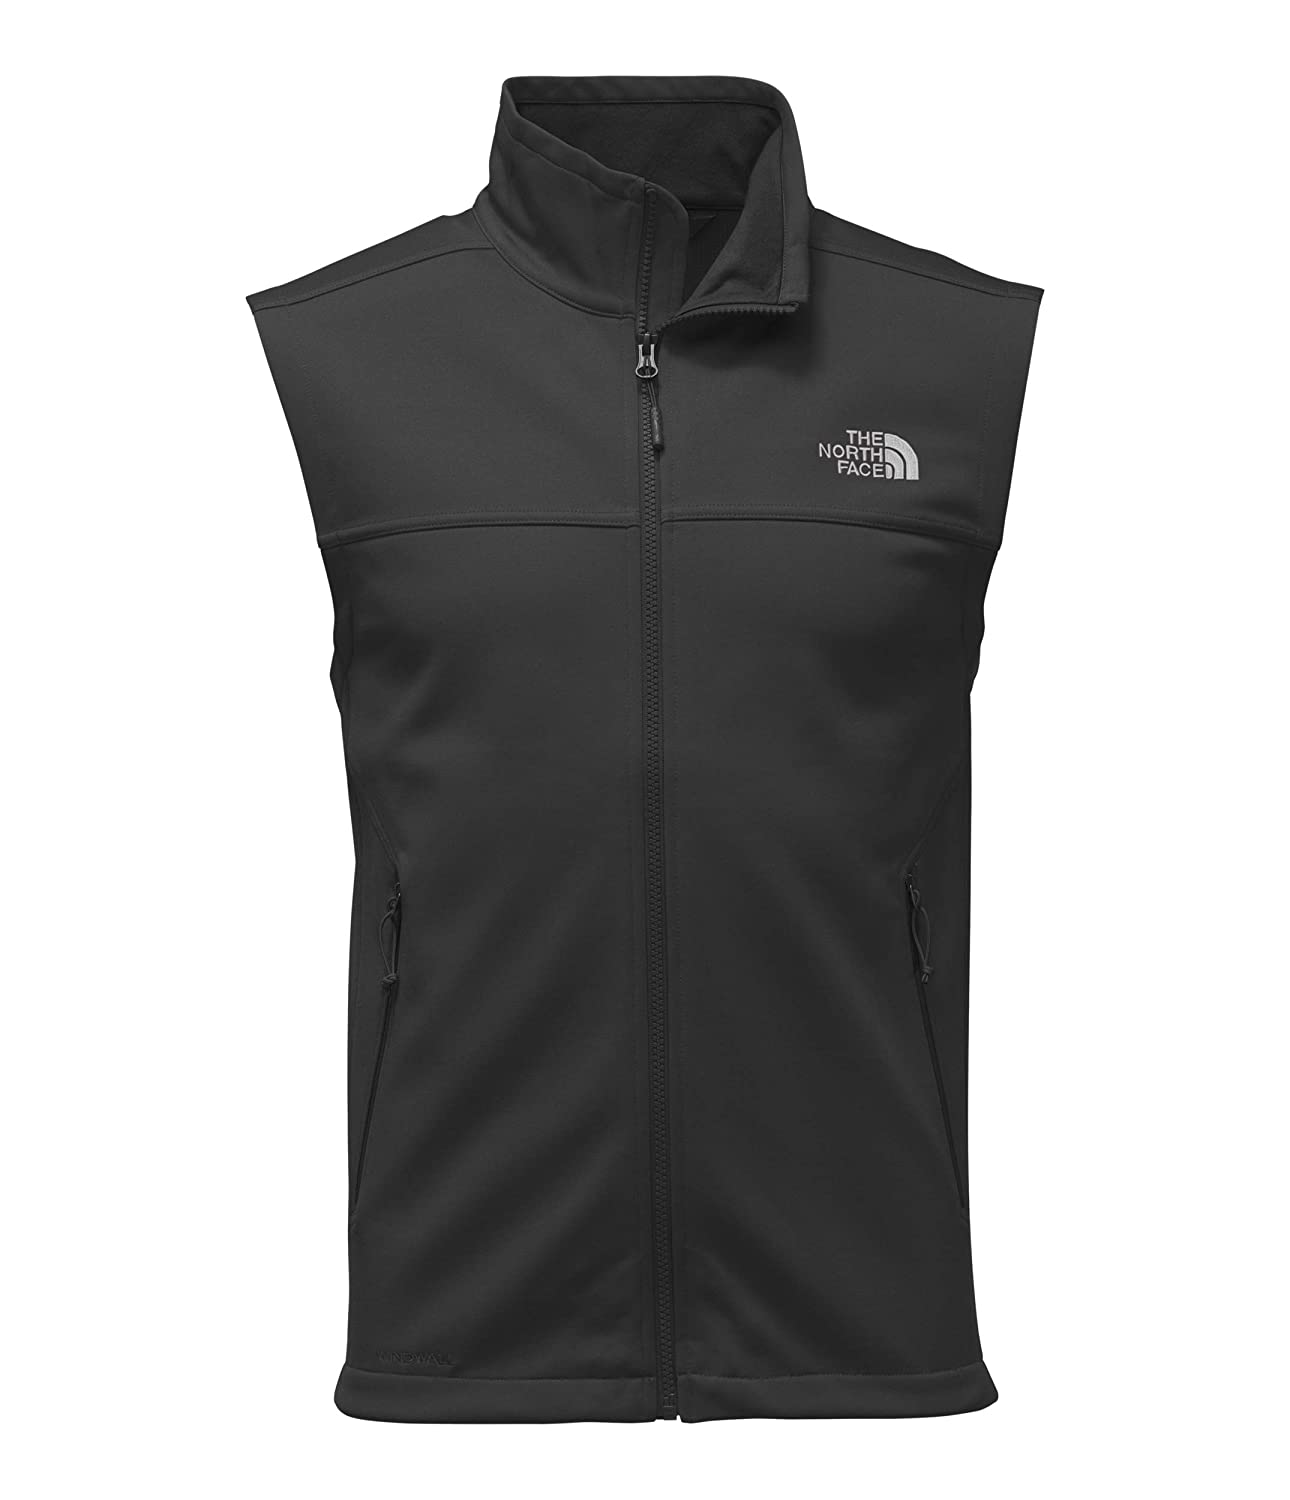 794cab9e6fb4 Amazon.com  The North Face Men s Apex Canyonwall Vest  Clothing